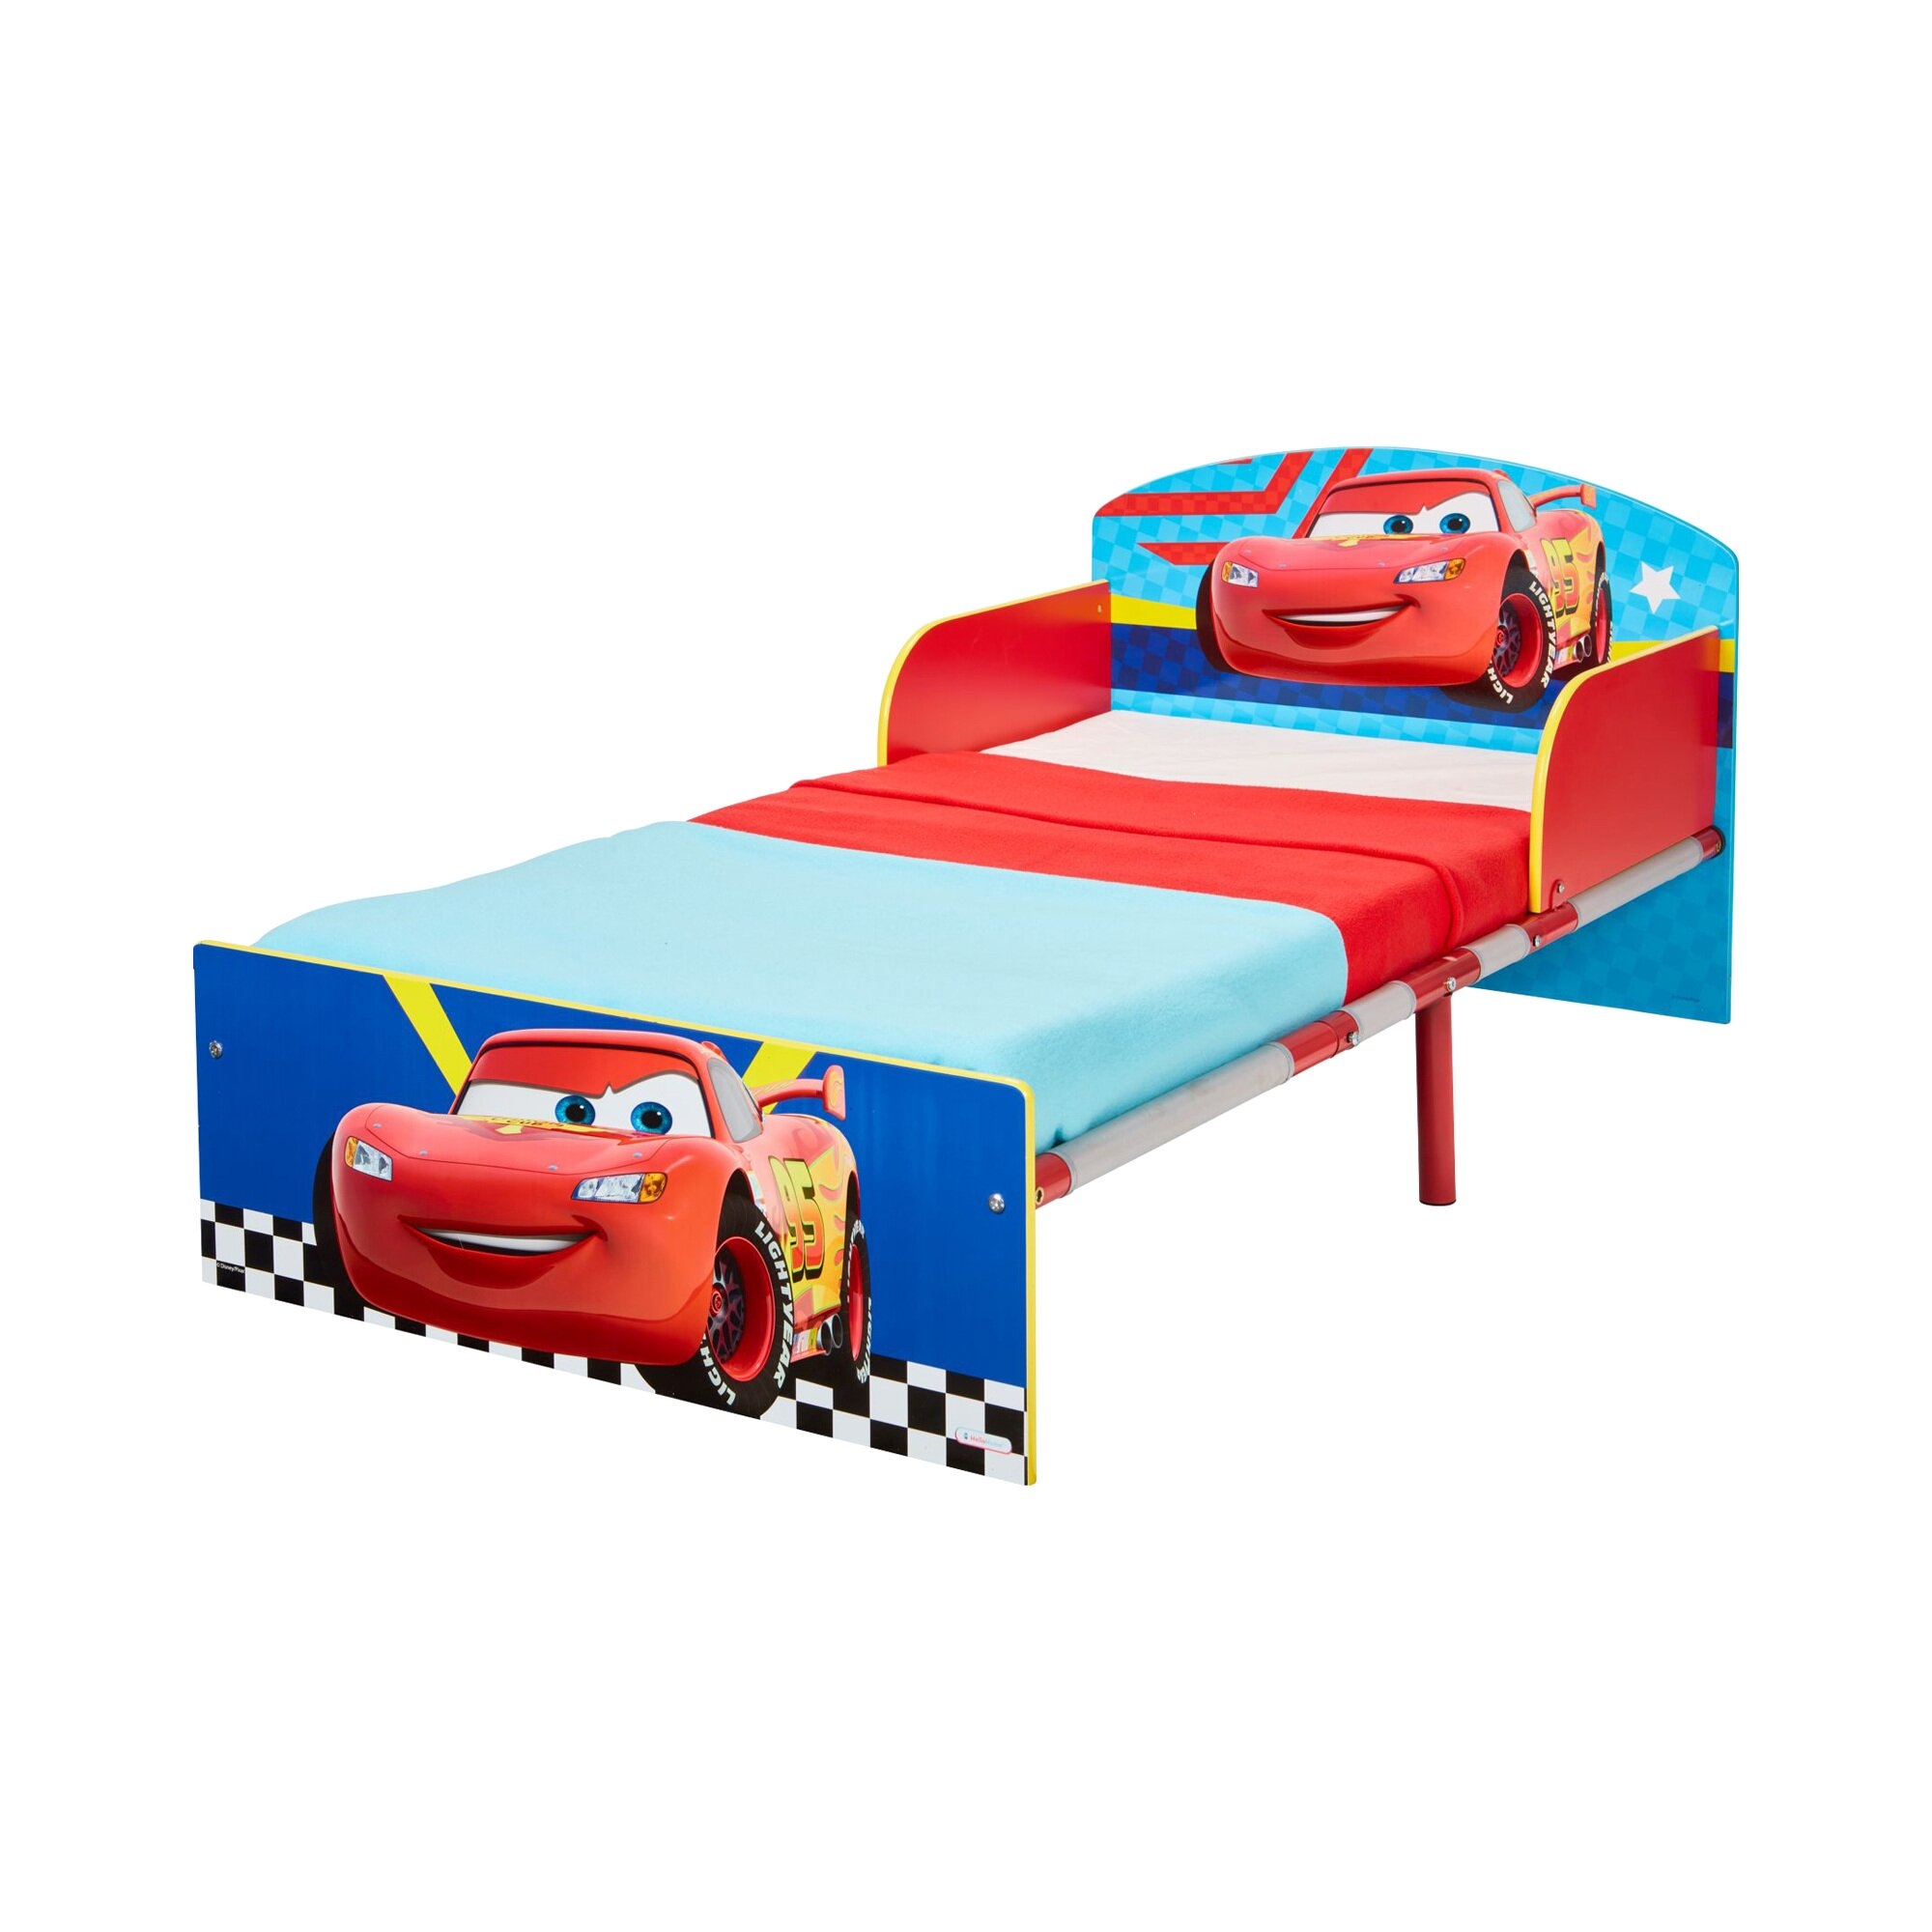 Disney Cars Kinderbett Cars 70 x 140 cm